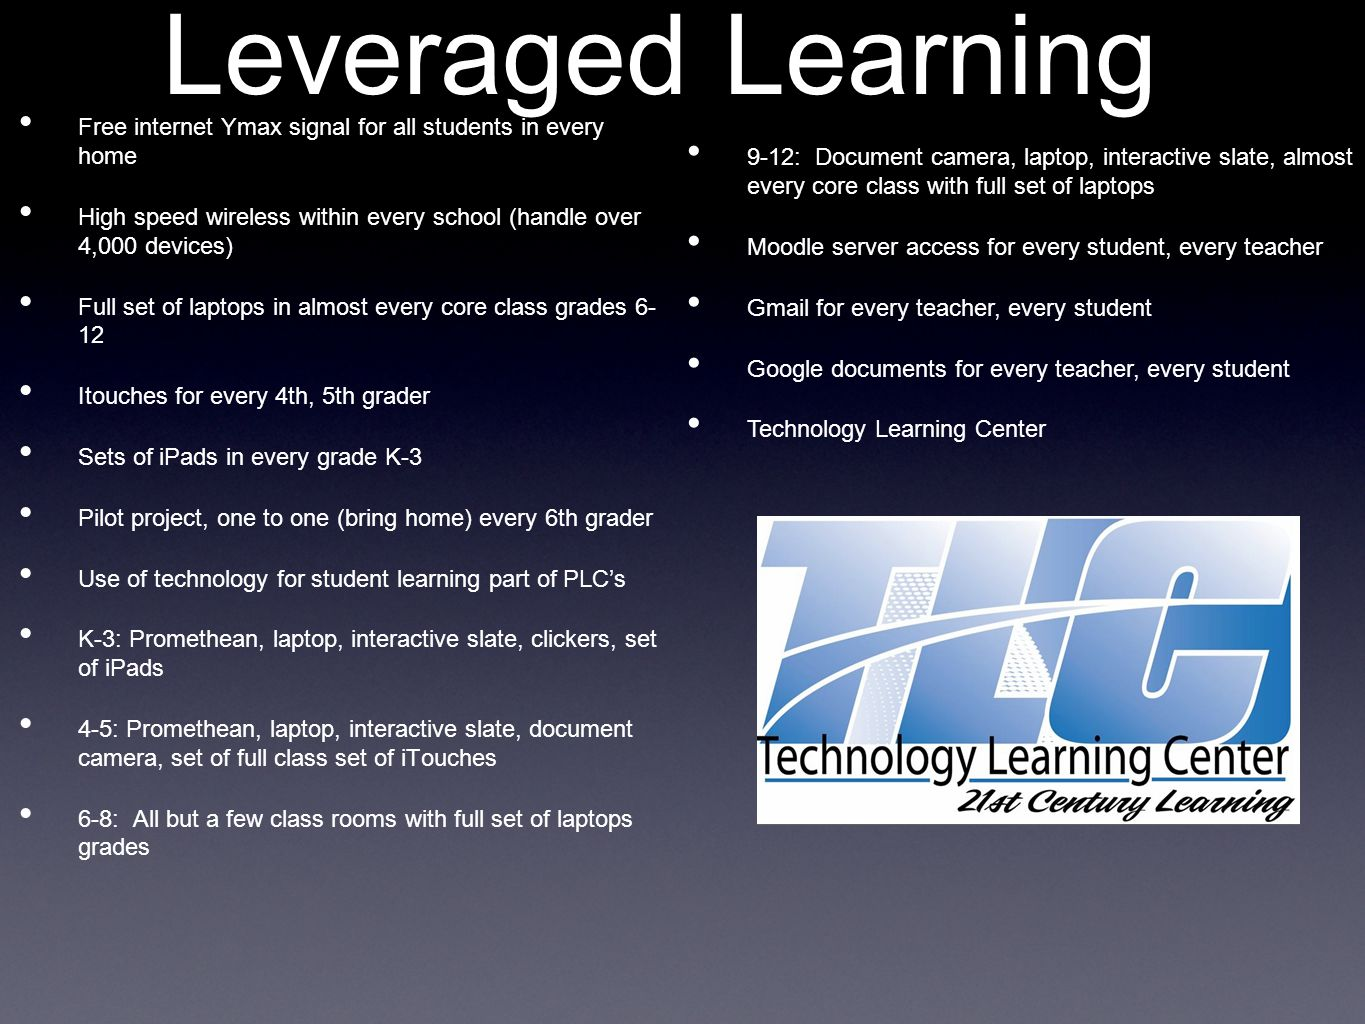 Leveraged Learning Free internet Ymax signal for all students in every home High speed wireless within every school (handle over 4,000 devices) Full set of laptops in almost every core class grades 6- 12 Itouches for every 4th, 5th grader Sets of iPads in every grade K-3 Pilot project, one to one (bring home) every 6th grader Use of technology for student learning part of PLCs K-3: Promethean, laptop, interactive slate, clickers, set of iPads 4-5: Promethean, laptop, interactive slate, document camera, set of full class set of iTouches 6-8: All but a few class rooms with full set of laptops grades 9-12: Document camera, laptop, interactive slate, almost every core class with full set of laptops Moodle server access for every student, every teacher Gmail for every teacher, every student Google documents for every teacher, every student Technology Learning Center